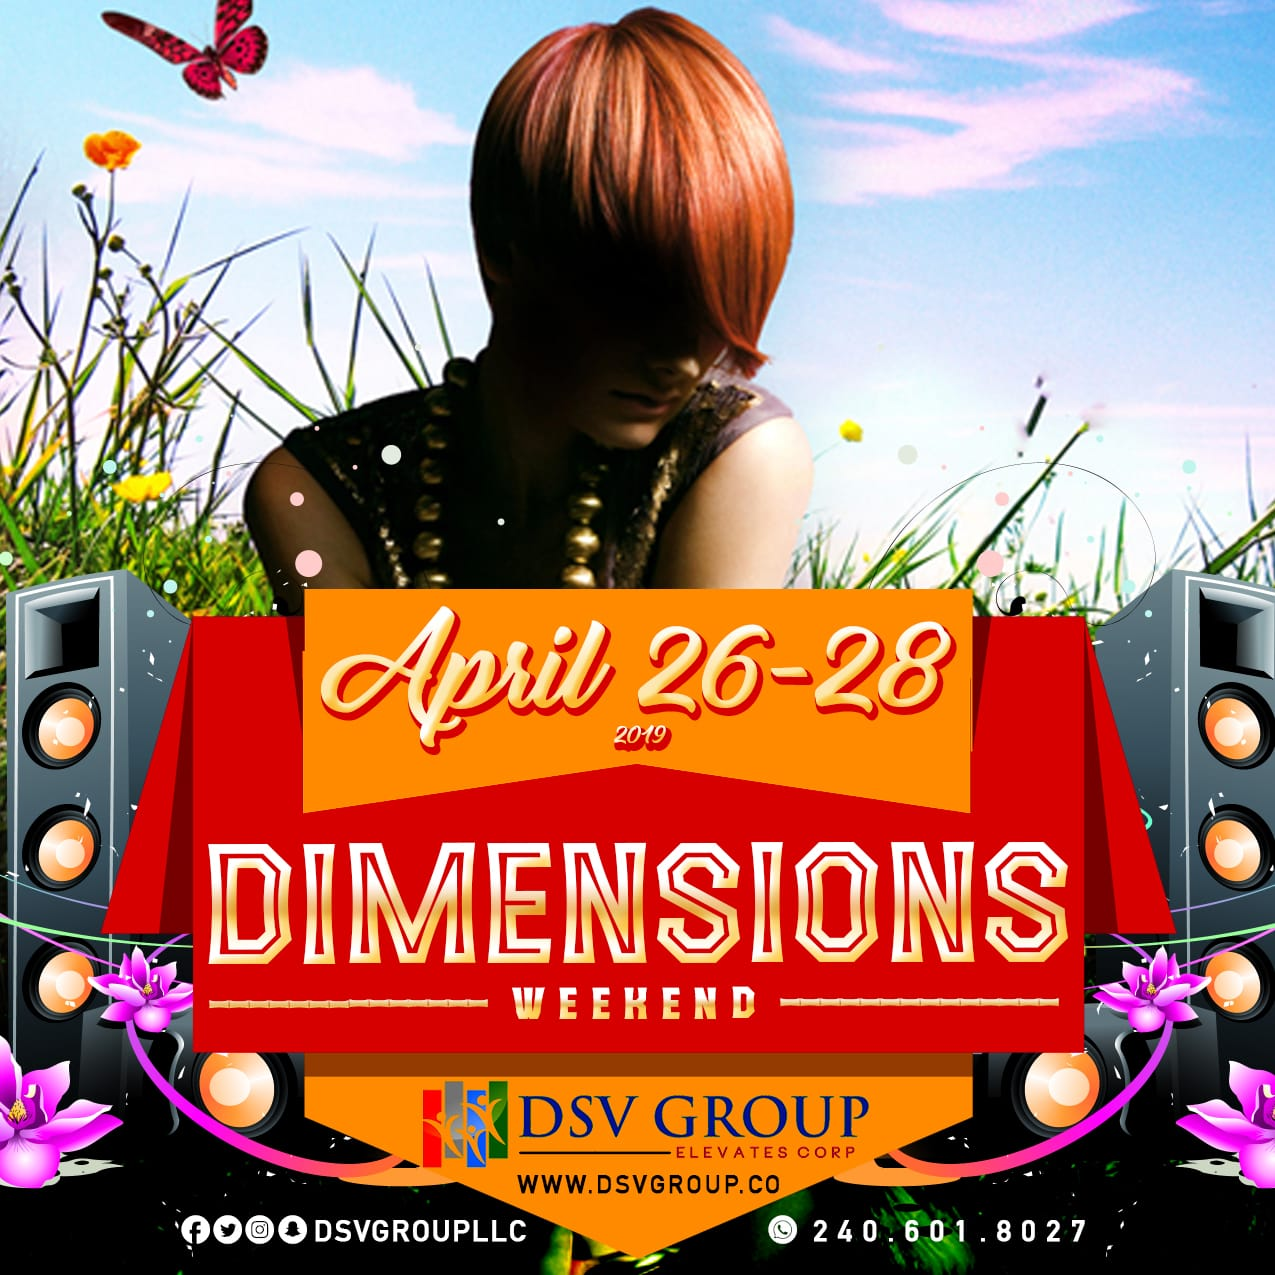 Dimensions Weekend DMV – April 26-28, 2019